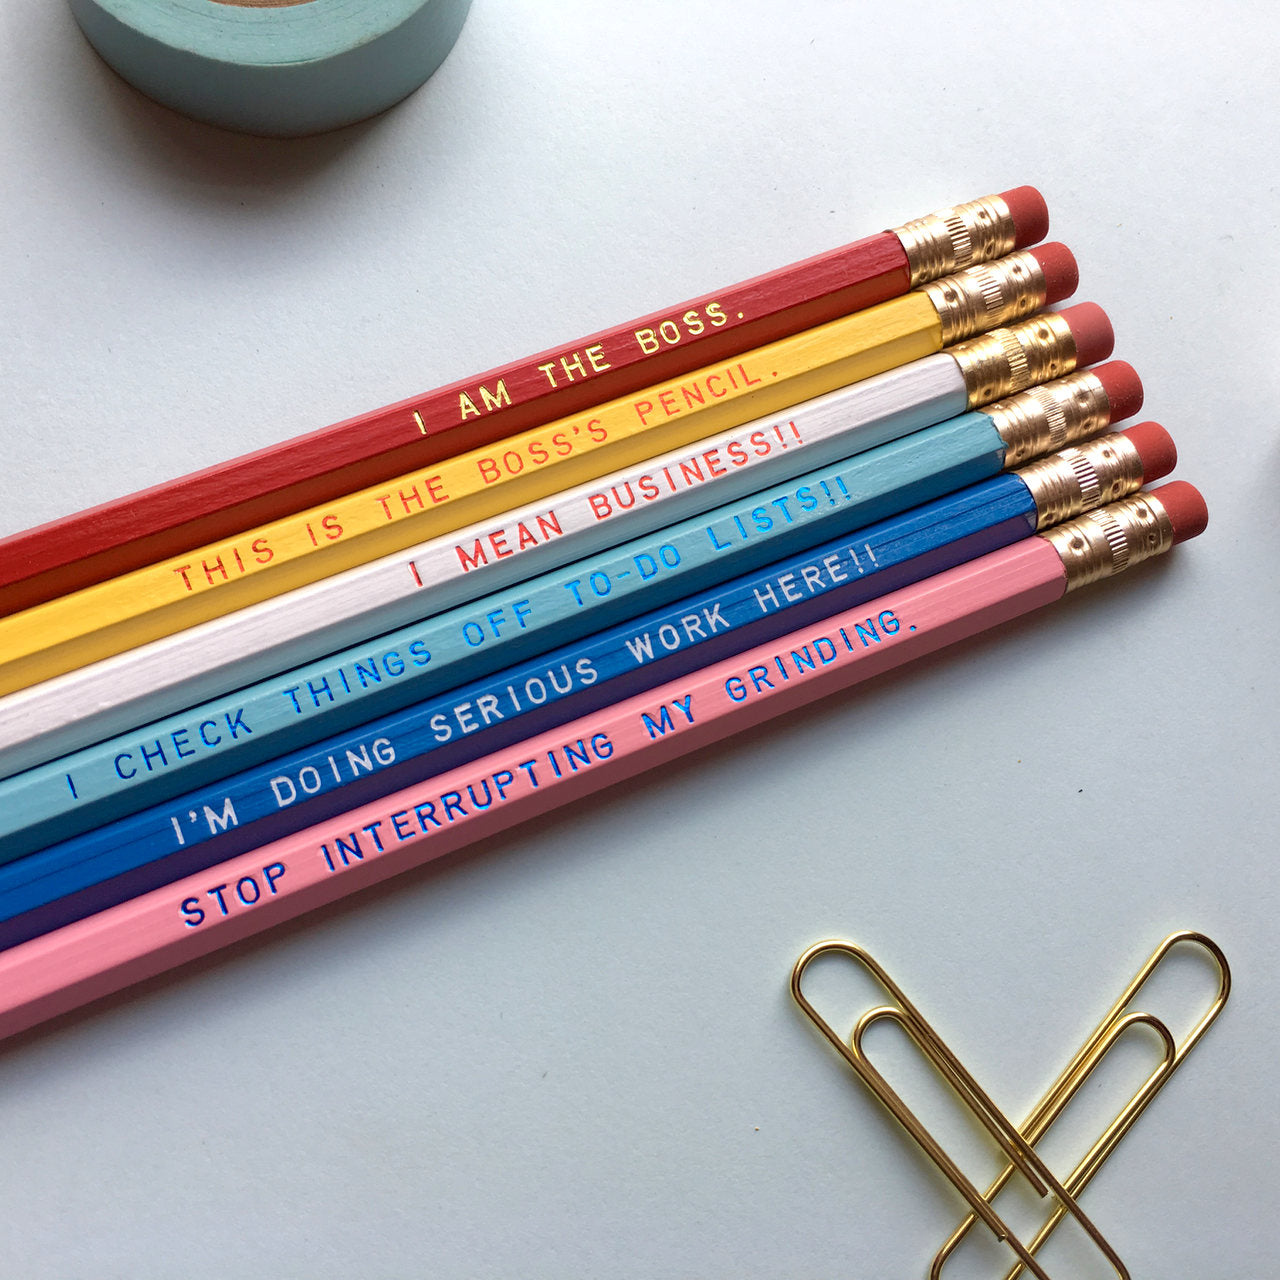 For those Cute and Busy Pencil Set